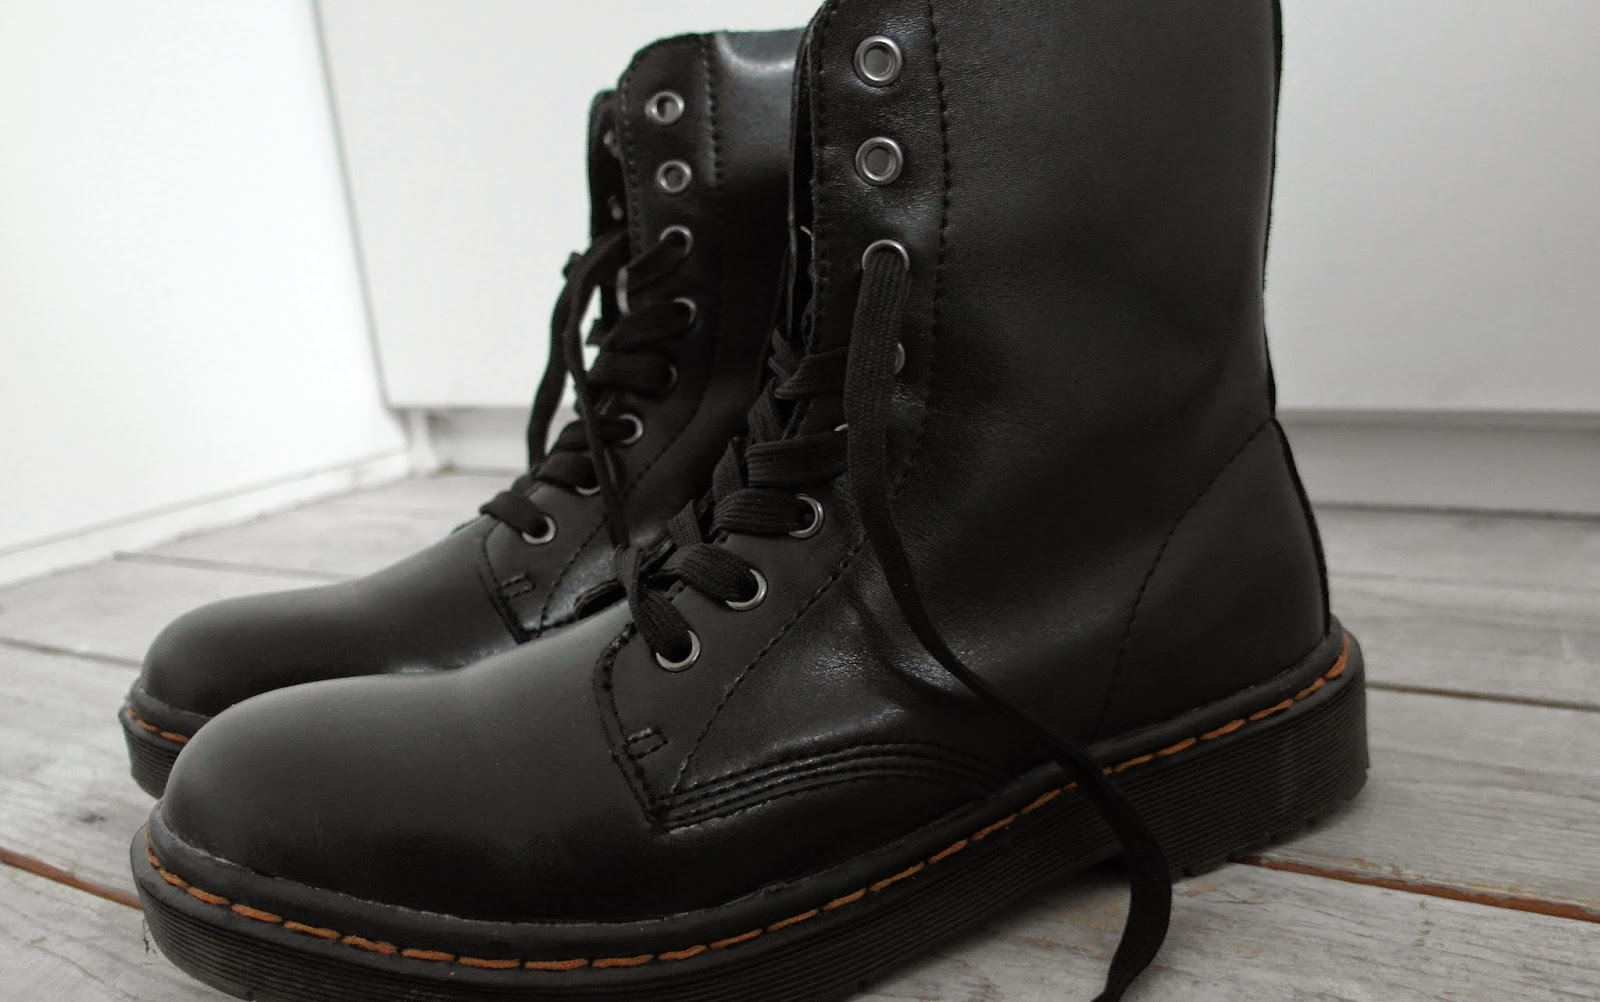 New in | Dr. Martens look-a-like